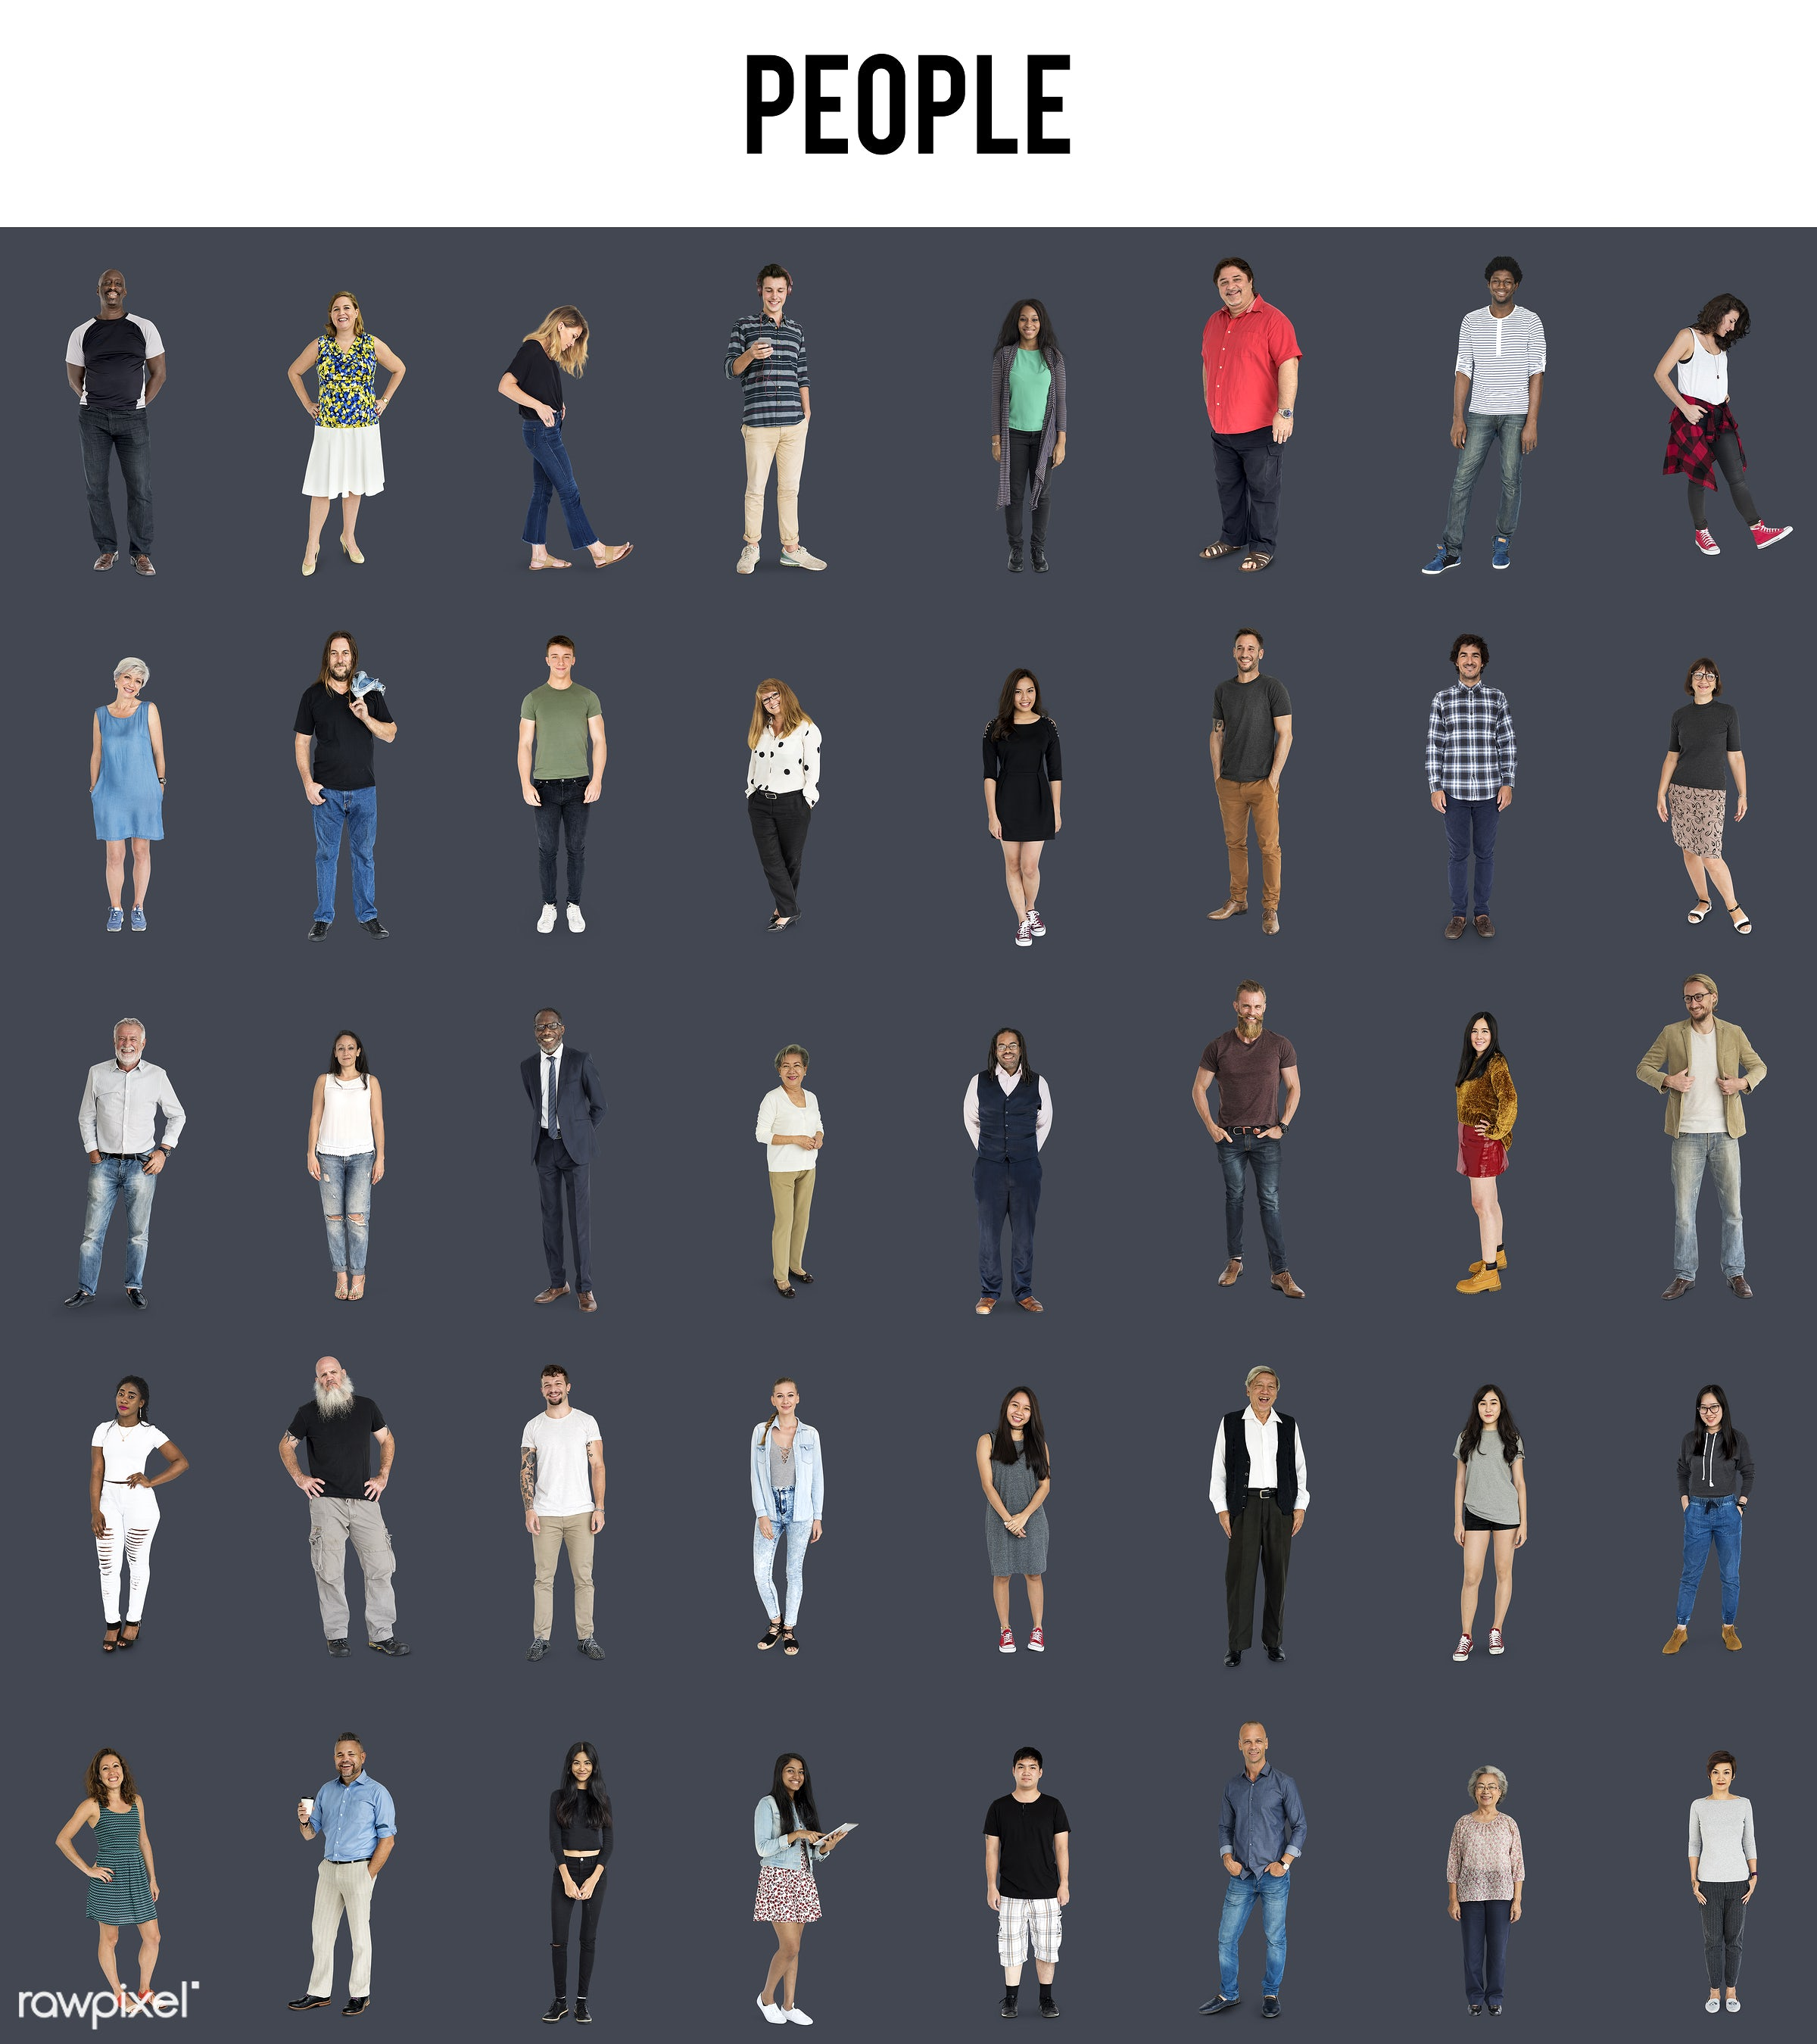 adult, african, age, asian, background, black, casual, caucasian, collection, community, concept, crowd, different, diverse...